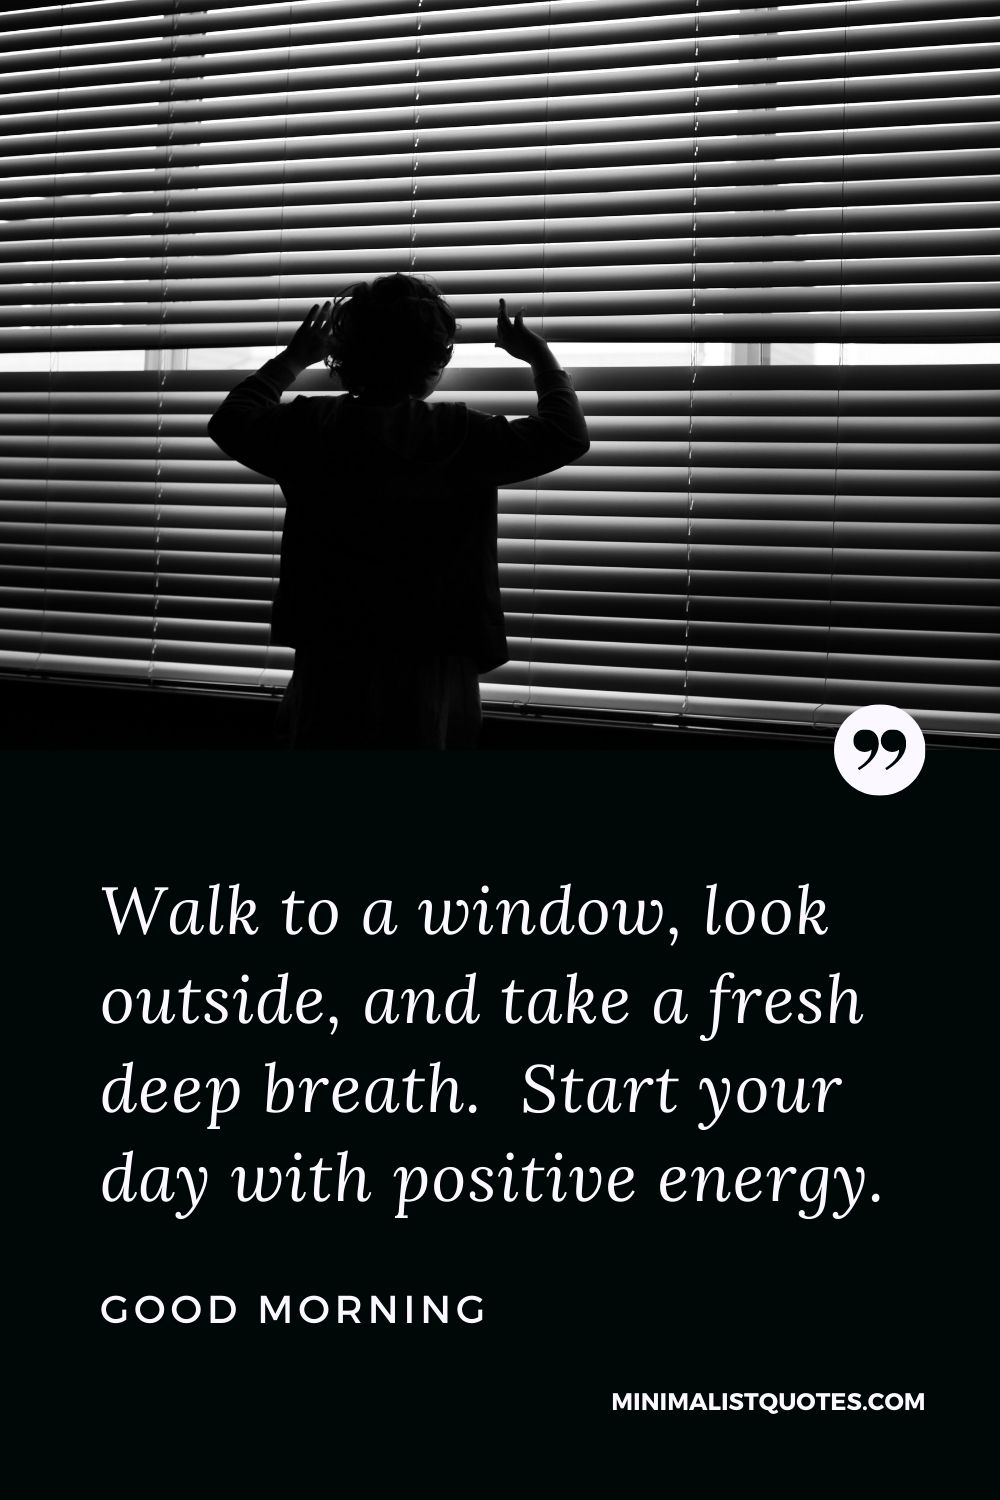 Good Morning Wish & Message With Image: Walk to a window, look outside, and take a fresh deep breath.Start your day with positive energy.